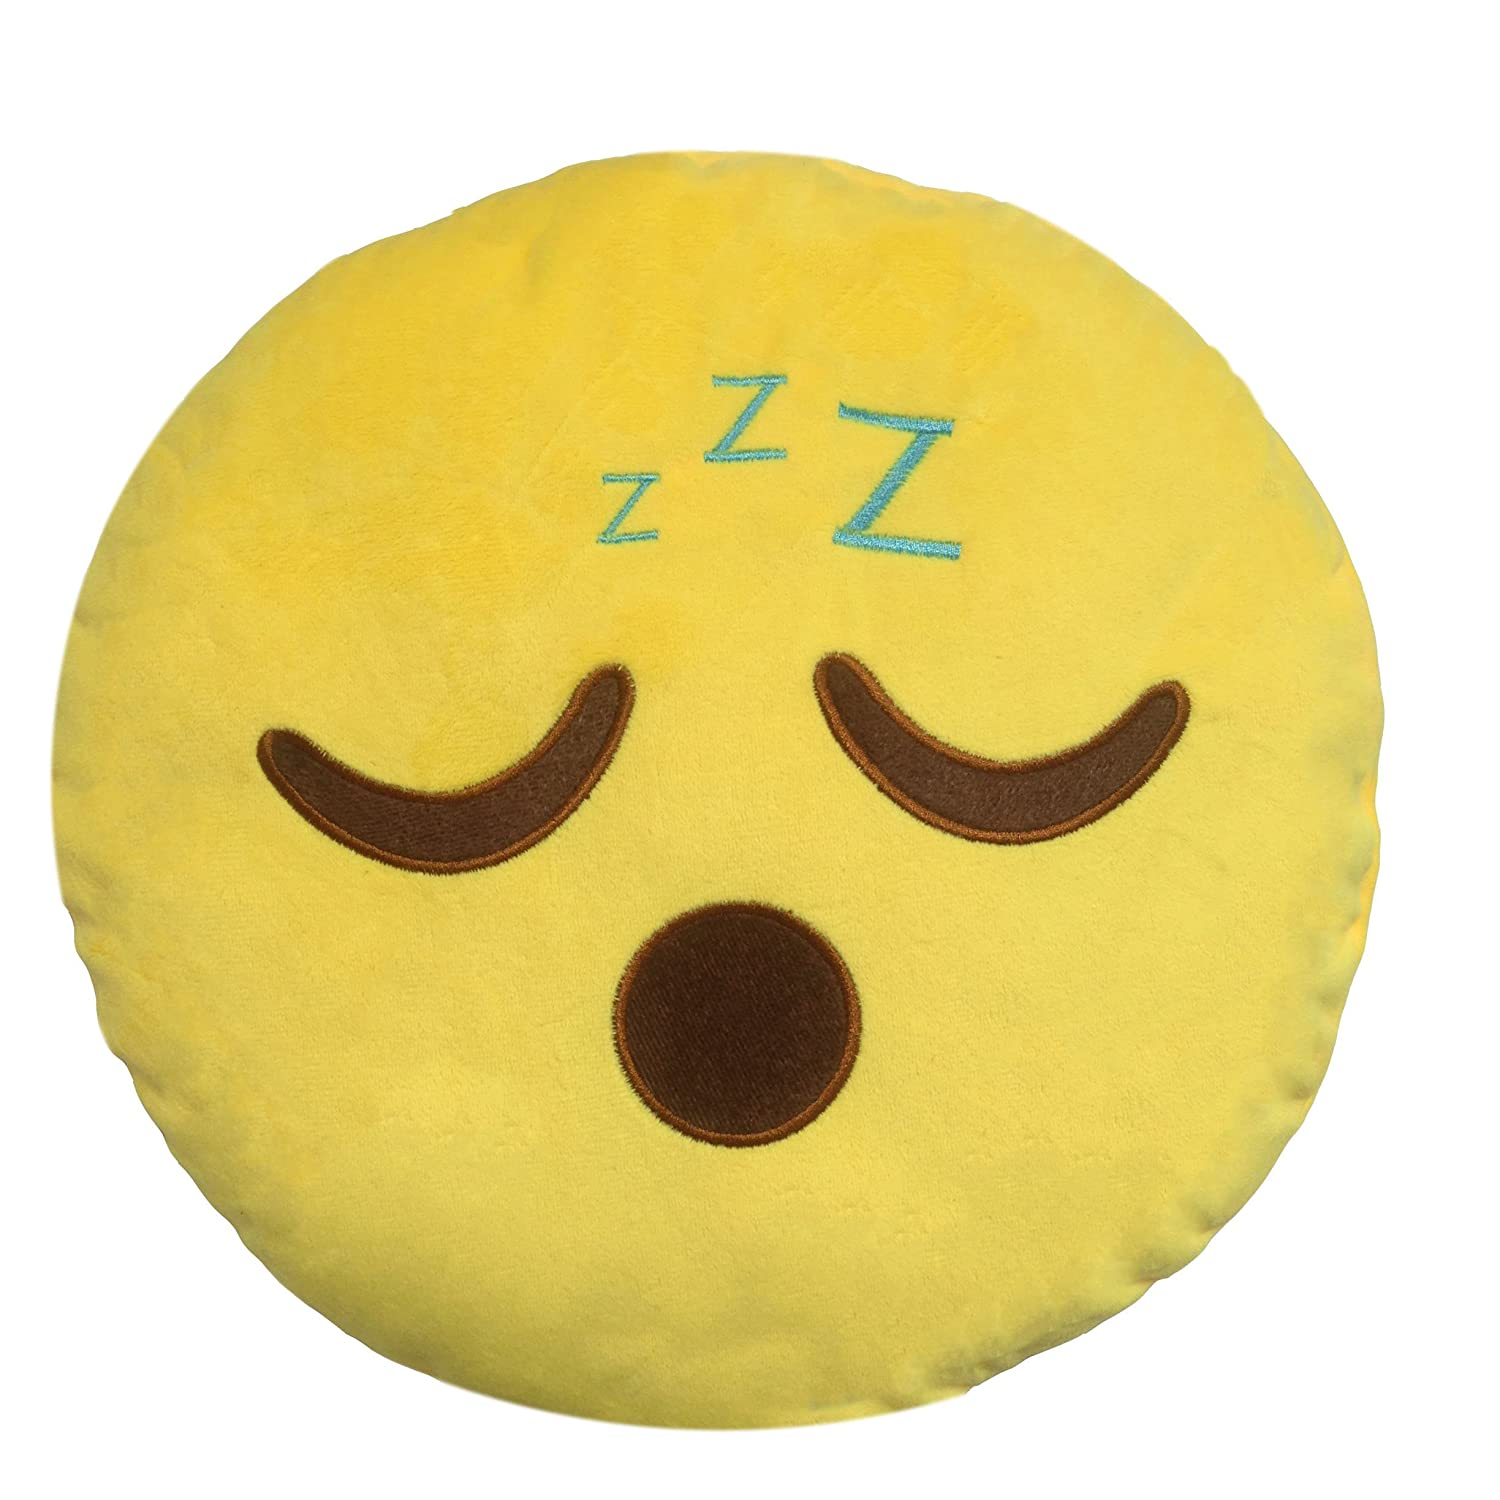 Amazon.com: LI&HI Emoji Cushion Smile Yellow Round Emoticon ...